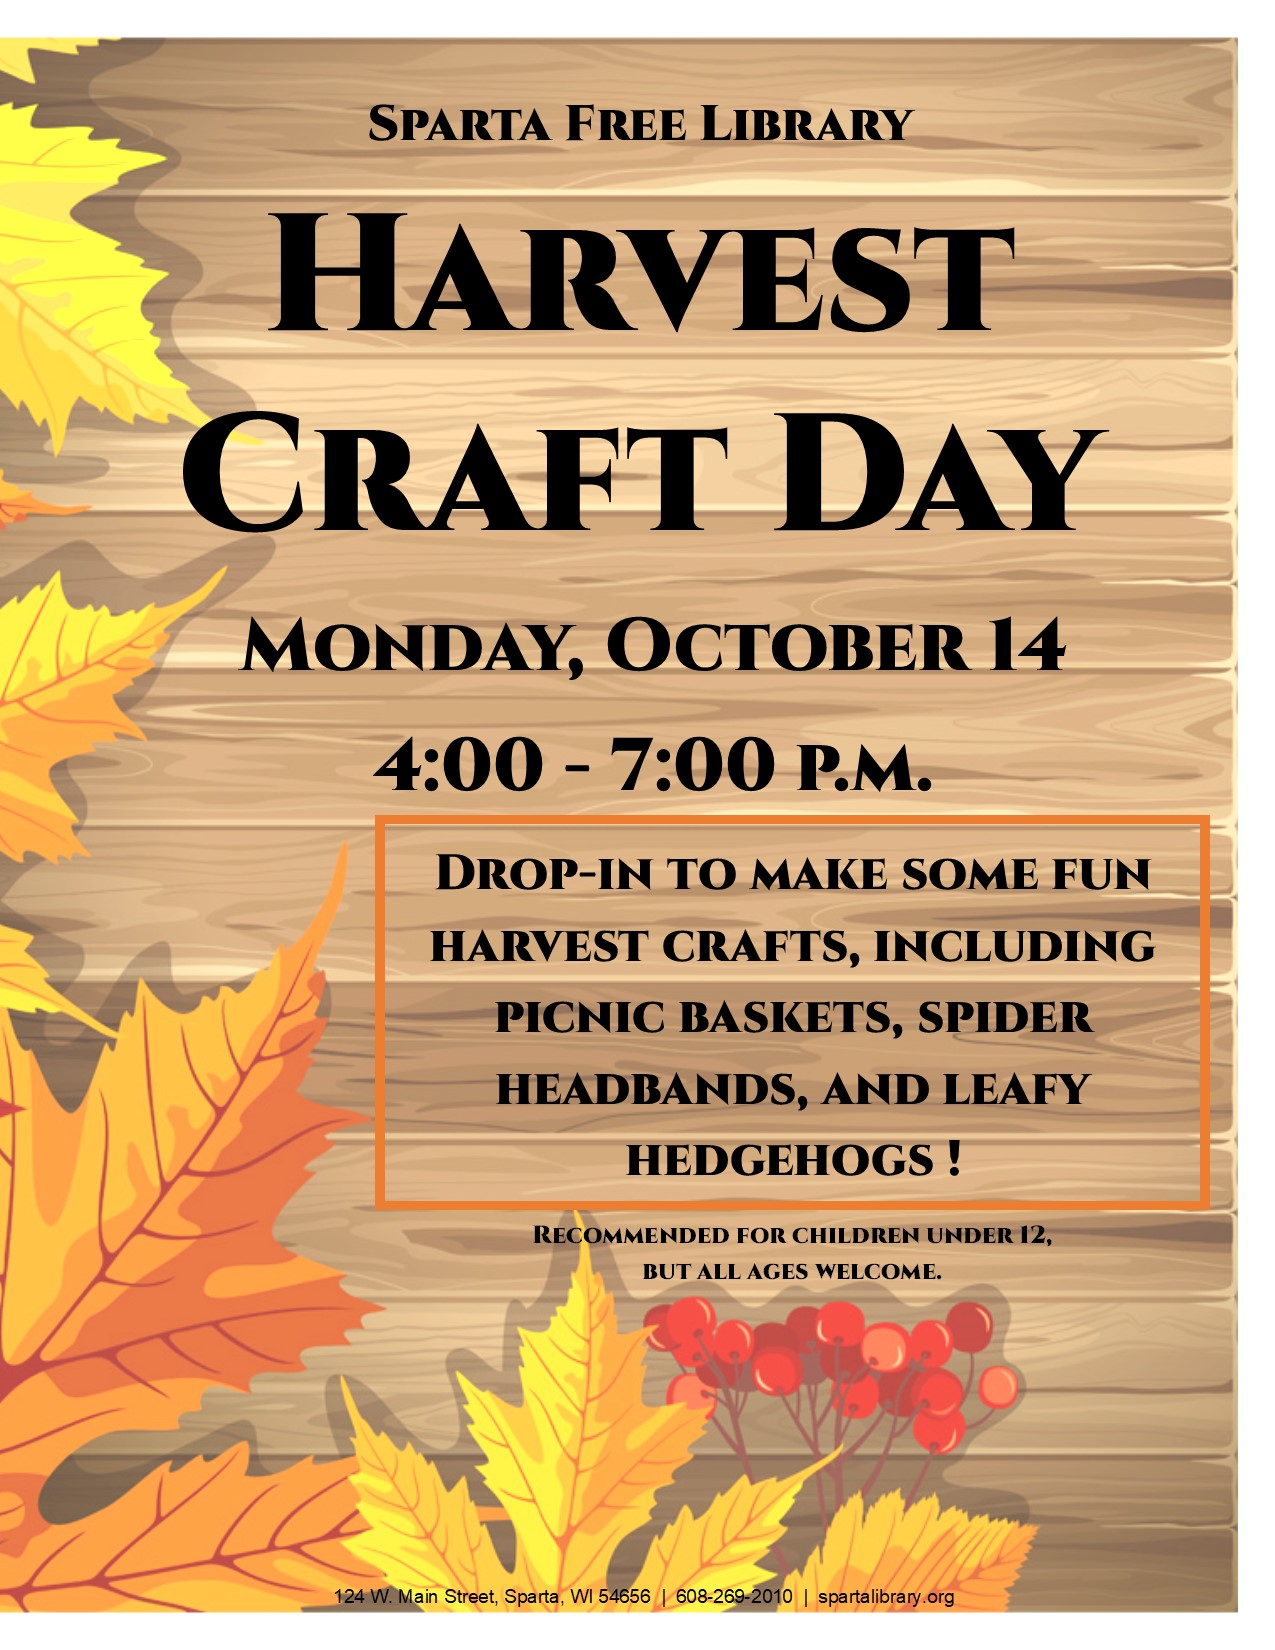 Harvest Craft Day @ Sparta Free Library